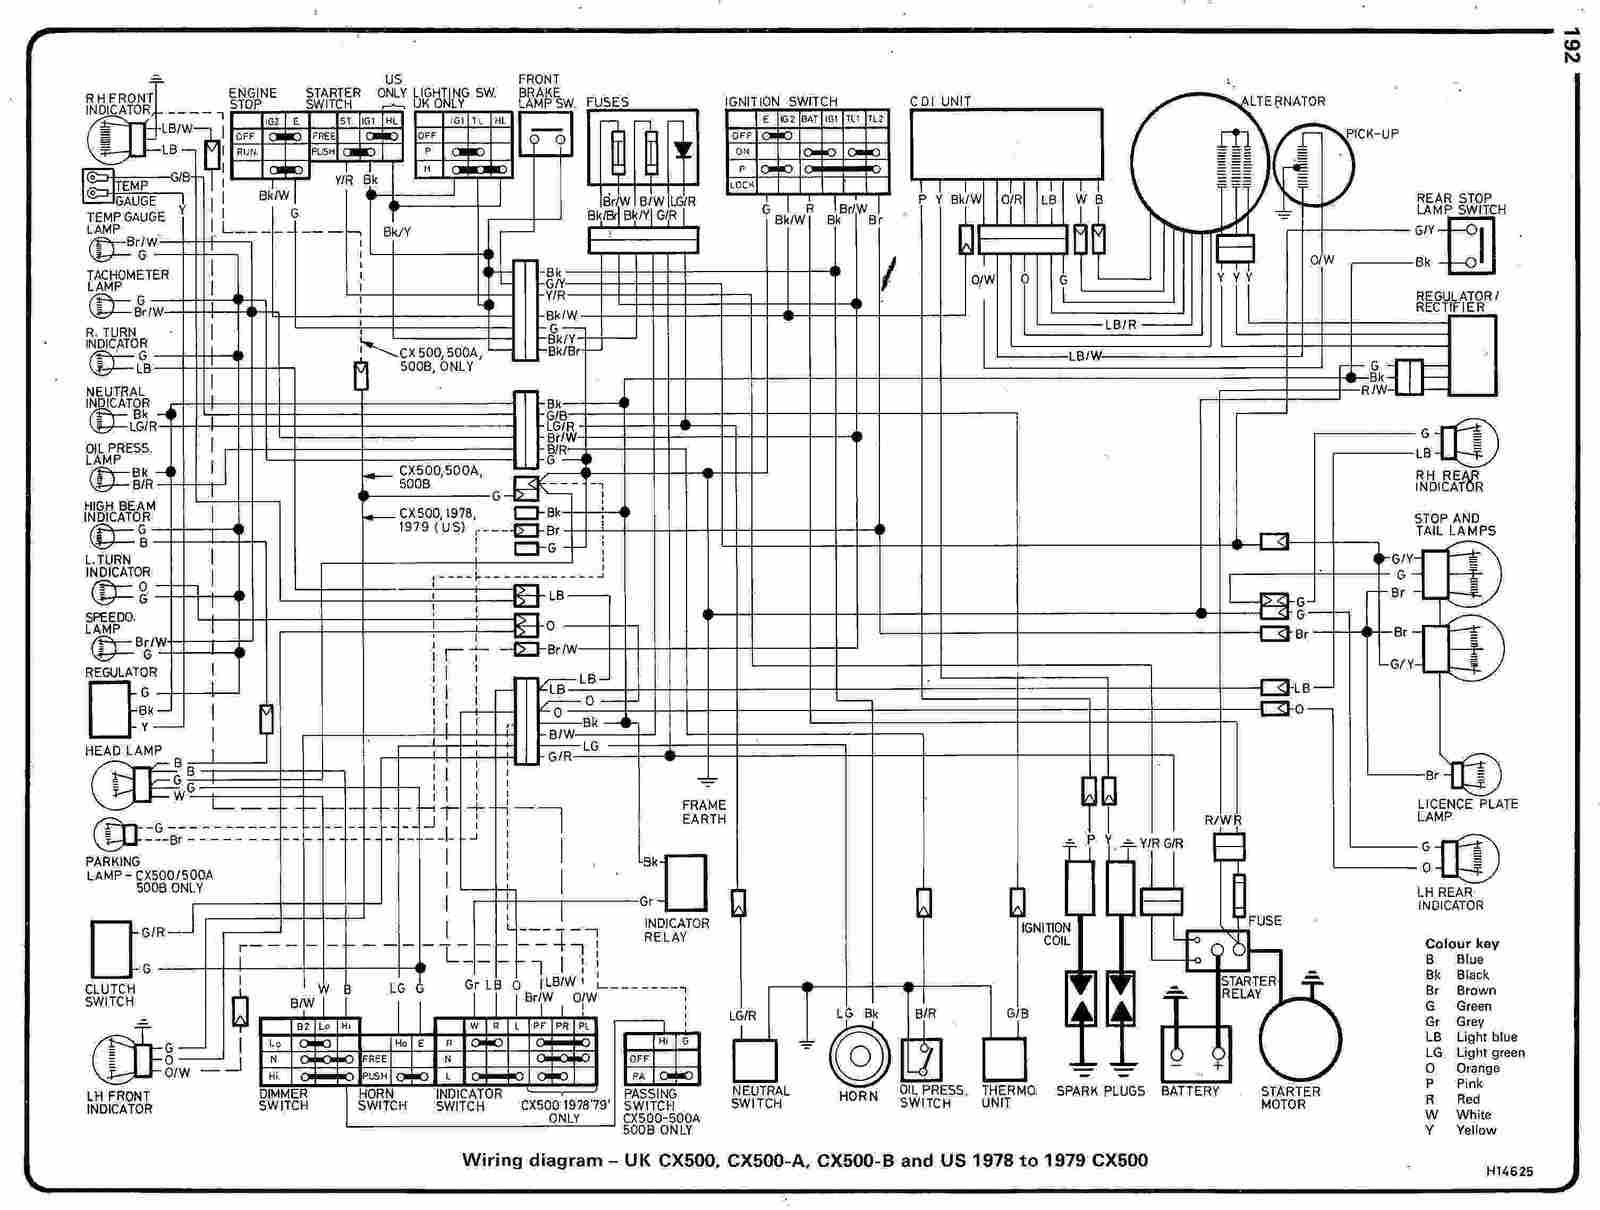 1978 Honda Cx500 Wiring Diagram Download Diagrams Motorcycle A B Uk And Us 79 Electrical Rh Diagramonwiring Blogspot Com 87 2003 Shadow 750